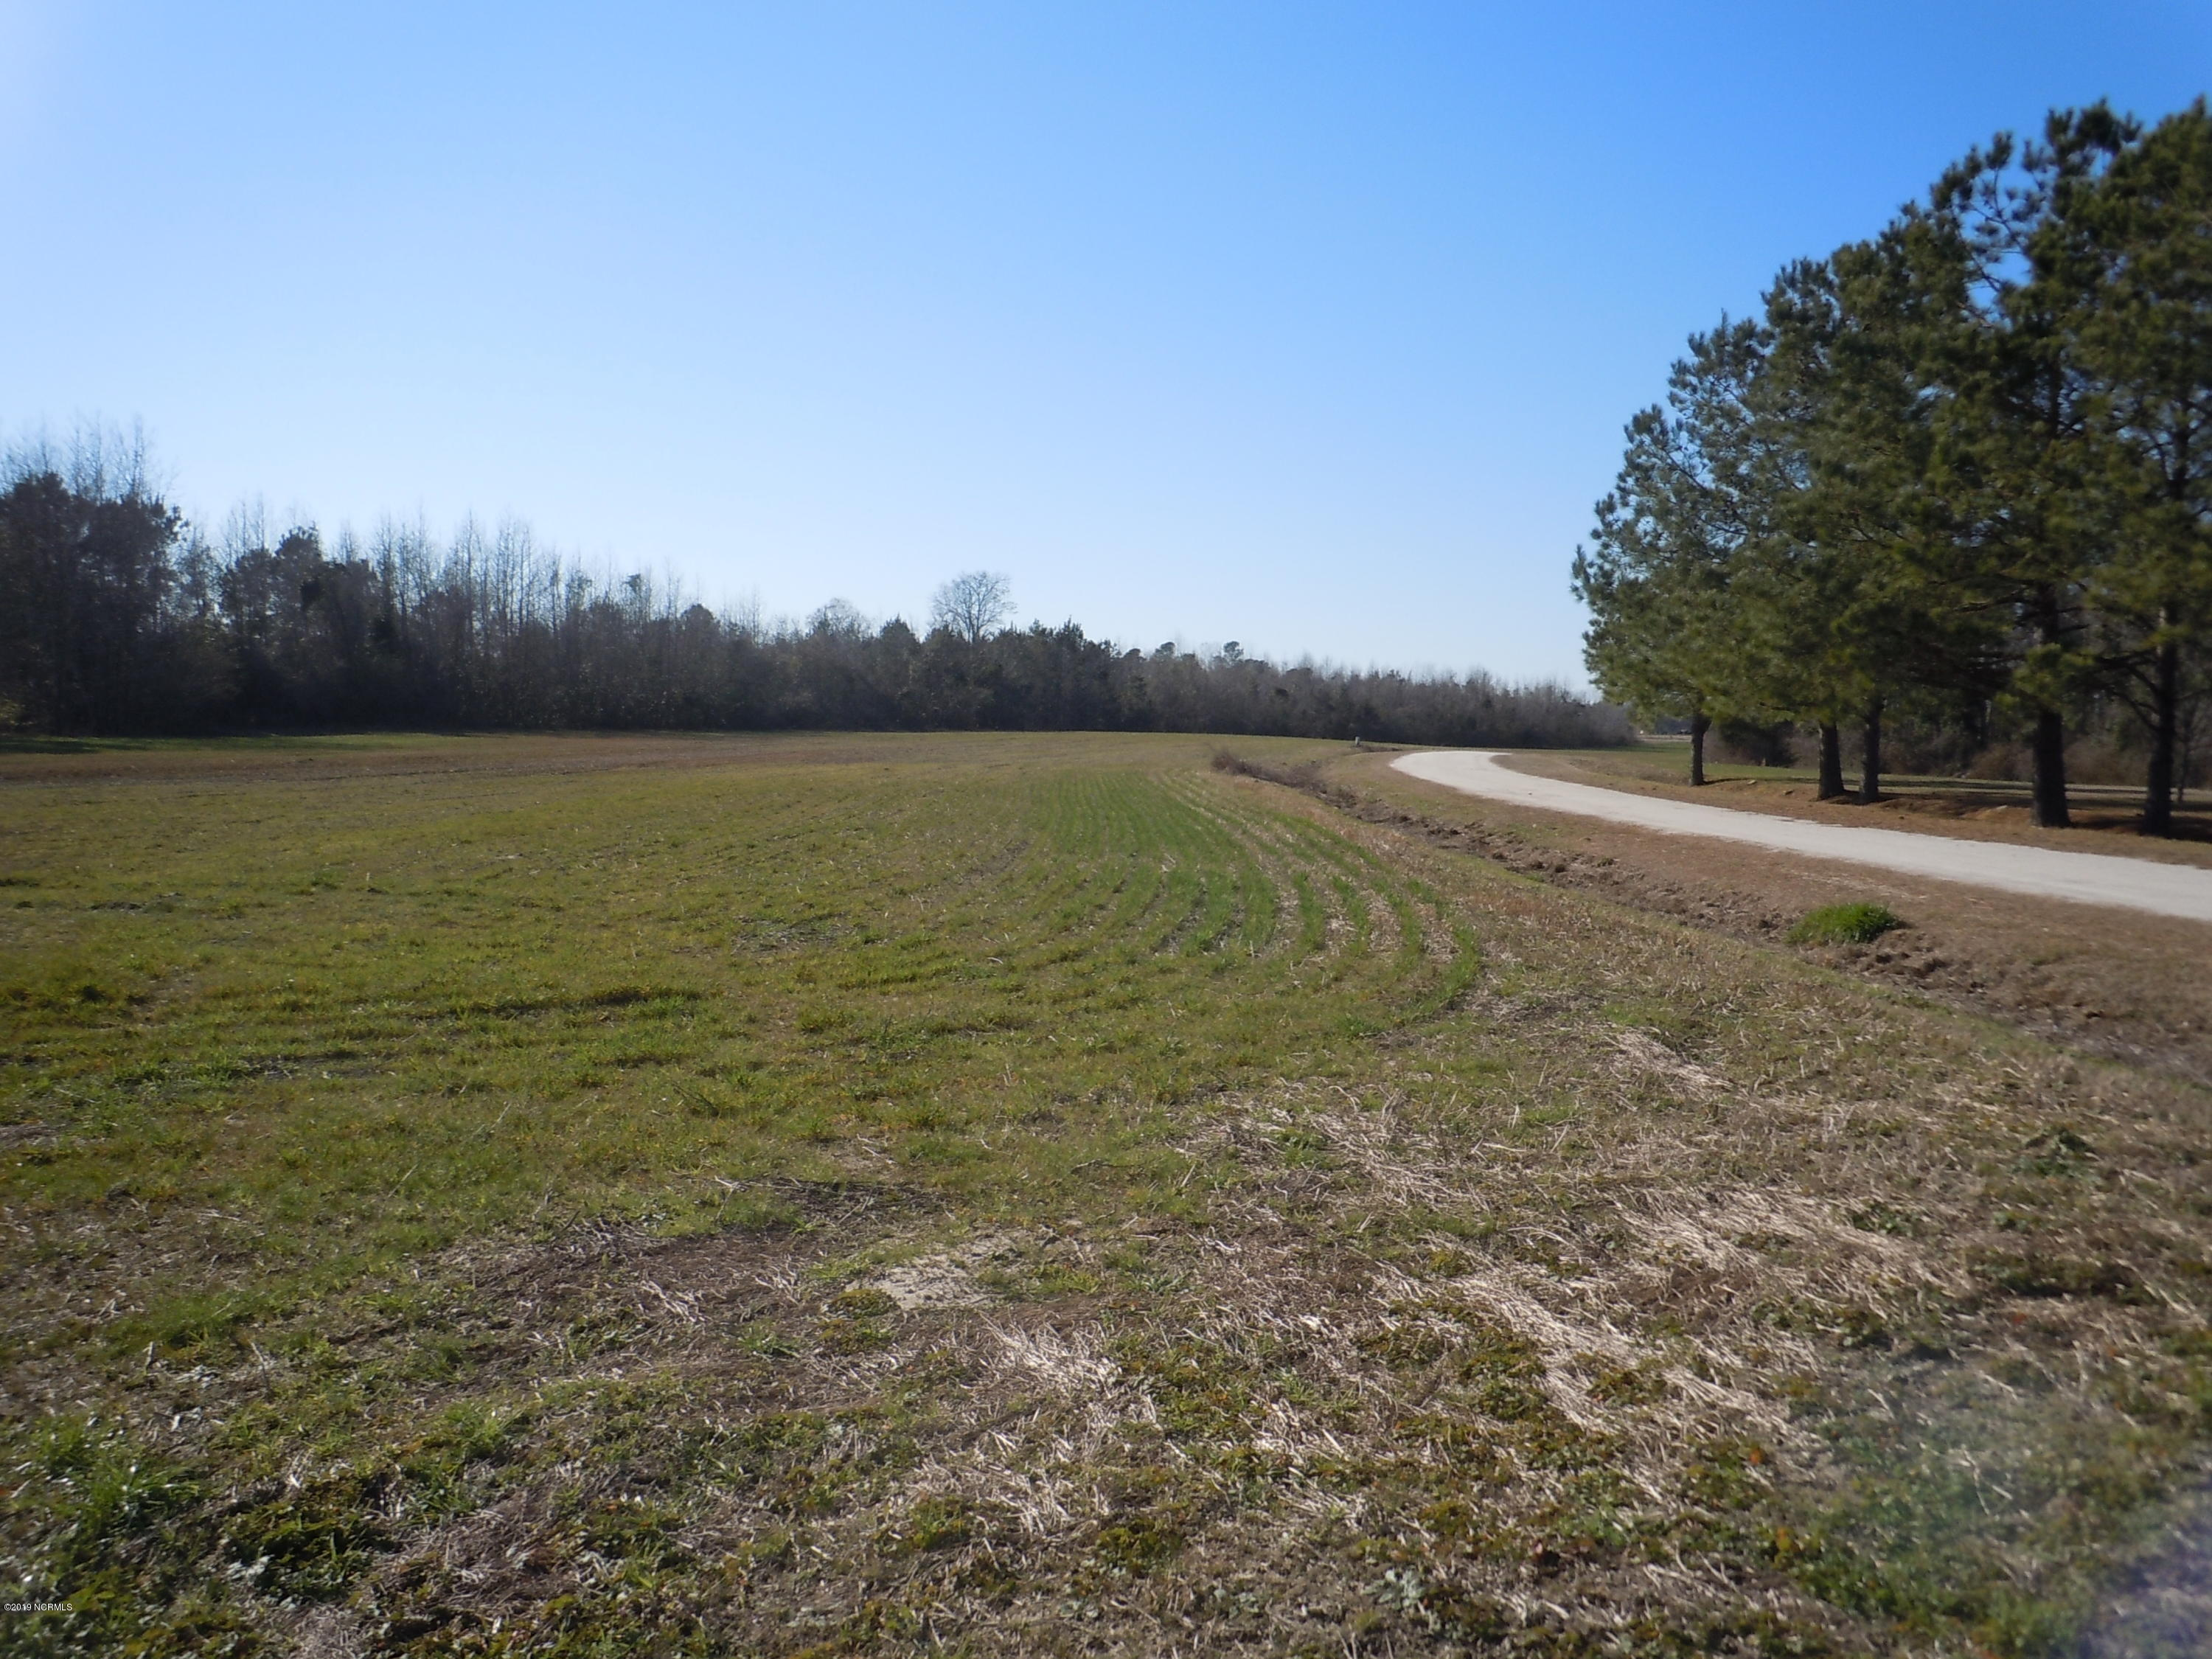 64 G & B Estates Avenue, Whiteville, North Carolina 28472, ,Residential land,For sale,G & B Estates,100190961